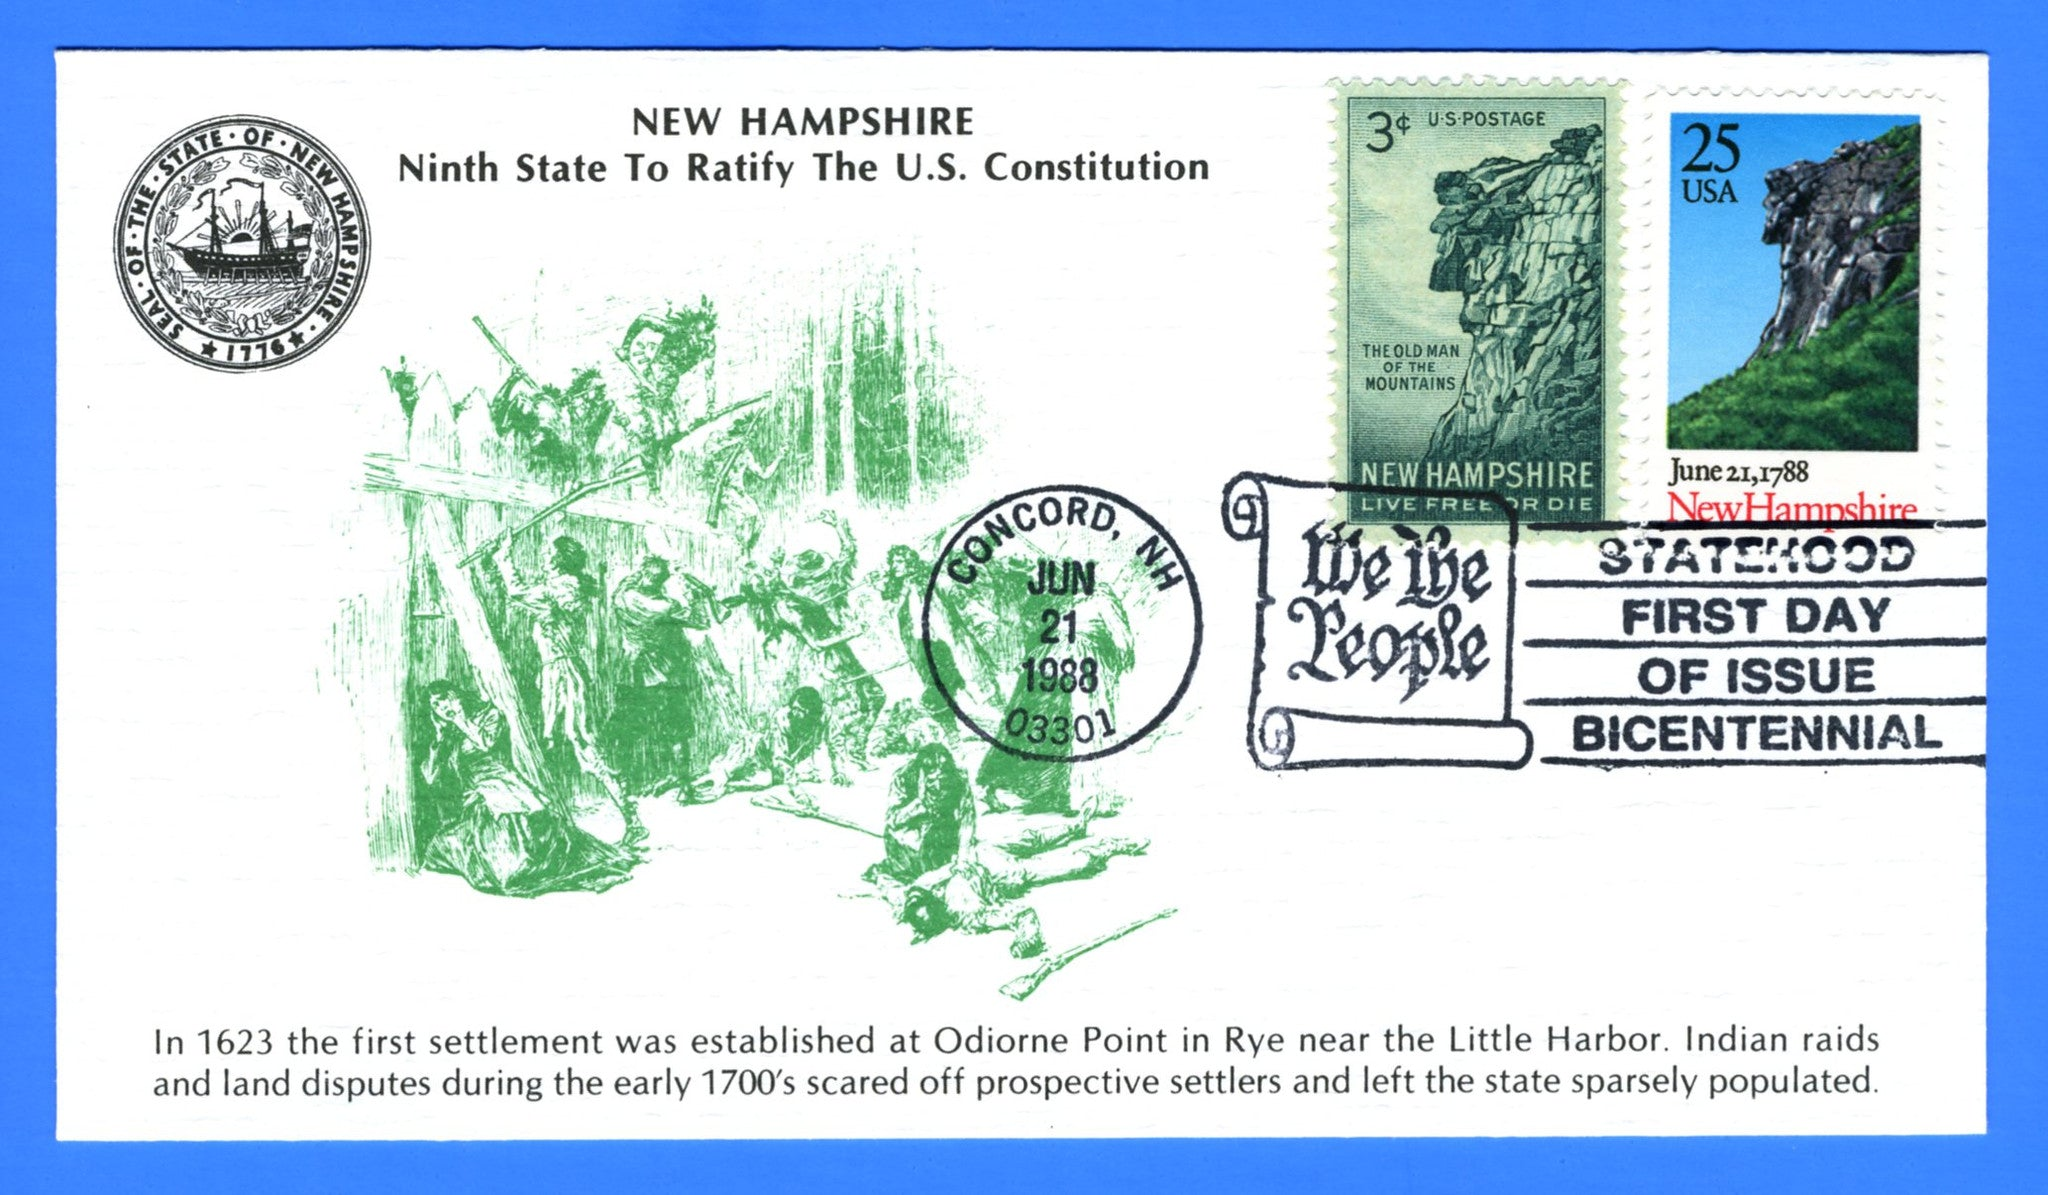 Scott 2344 25c New Hampshire Constitution Ratification Bicentennial First Day Cover by KMC Venture